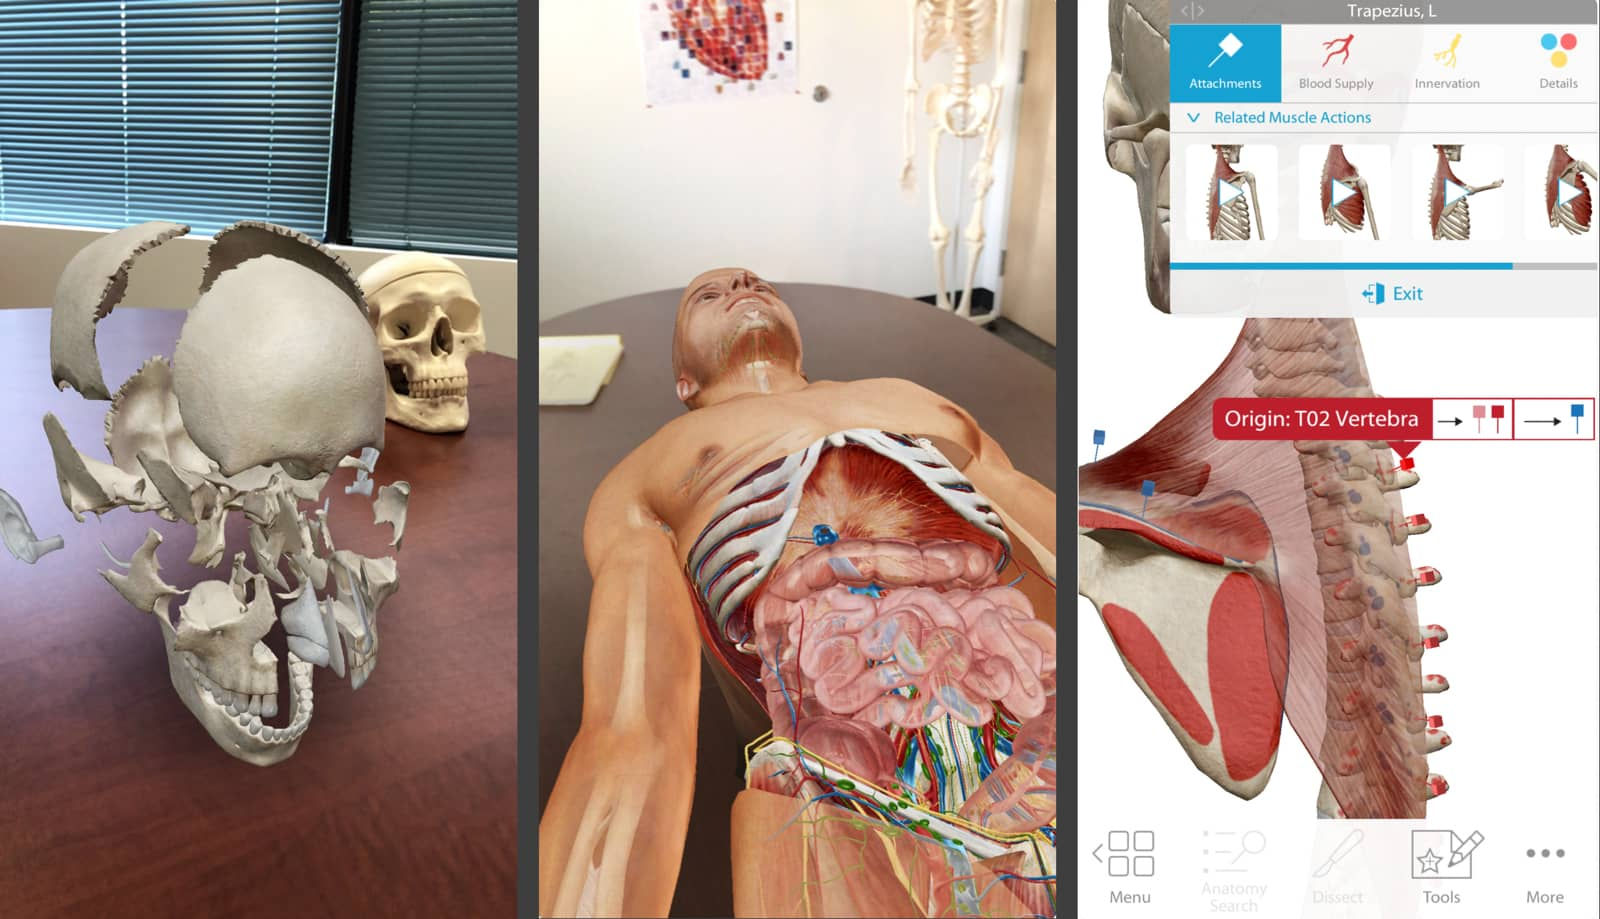 Human Anatomy Atlas One Of The New AR Apps And Games